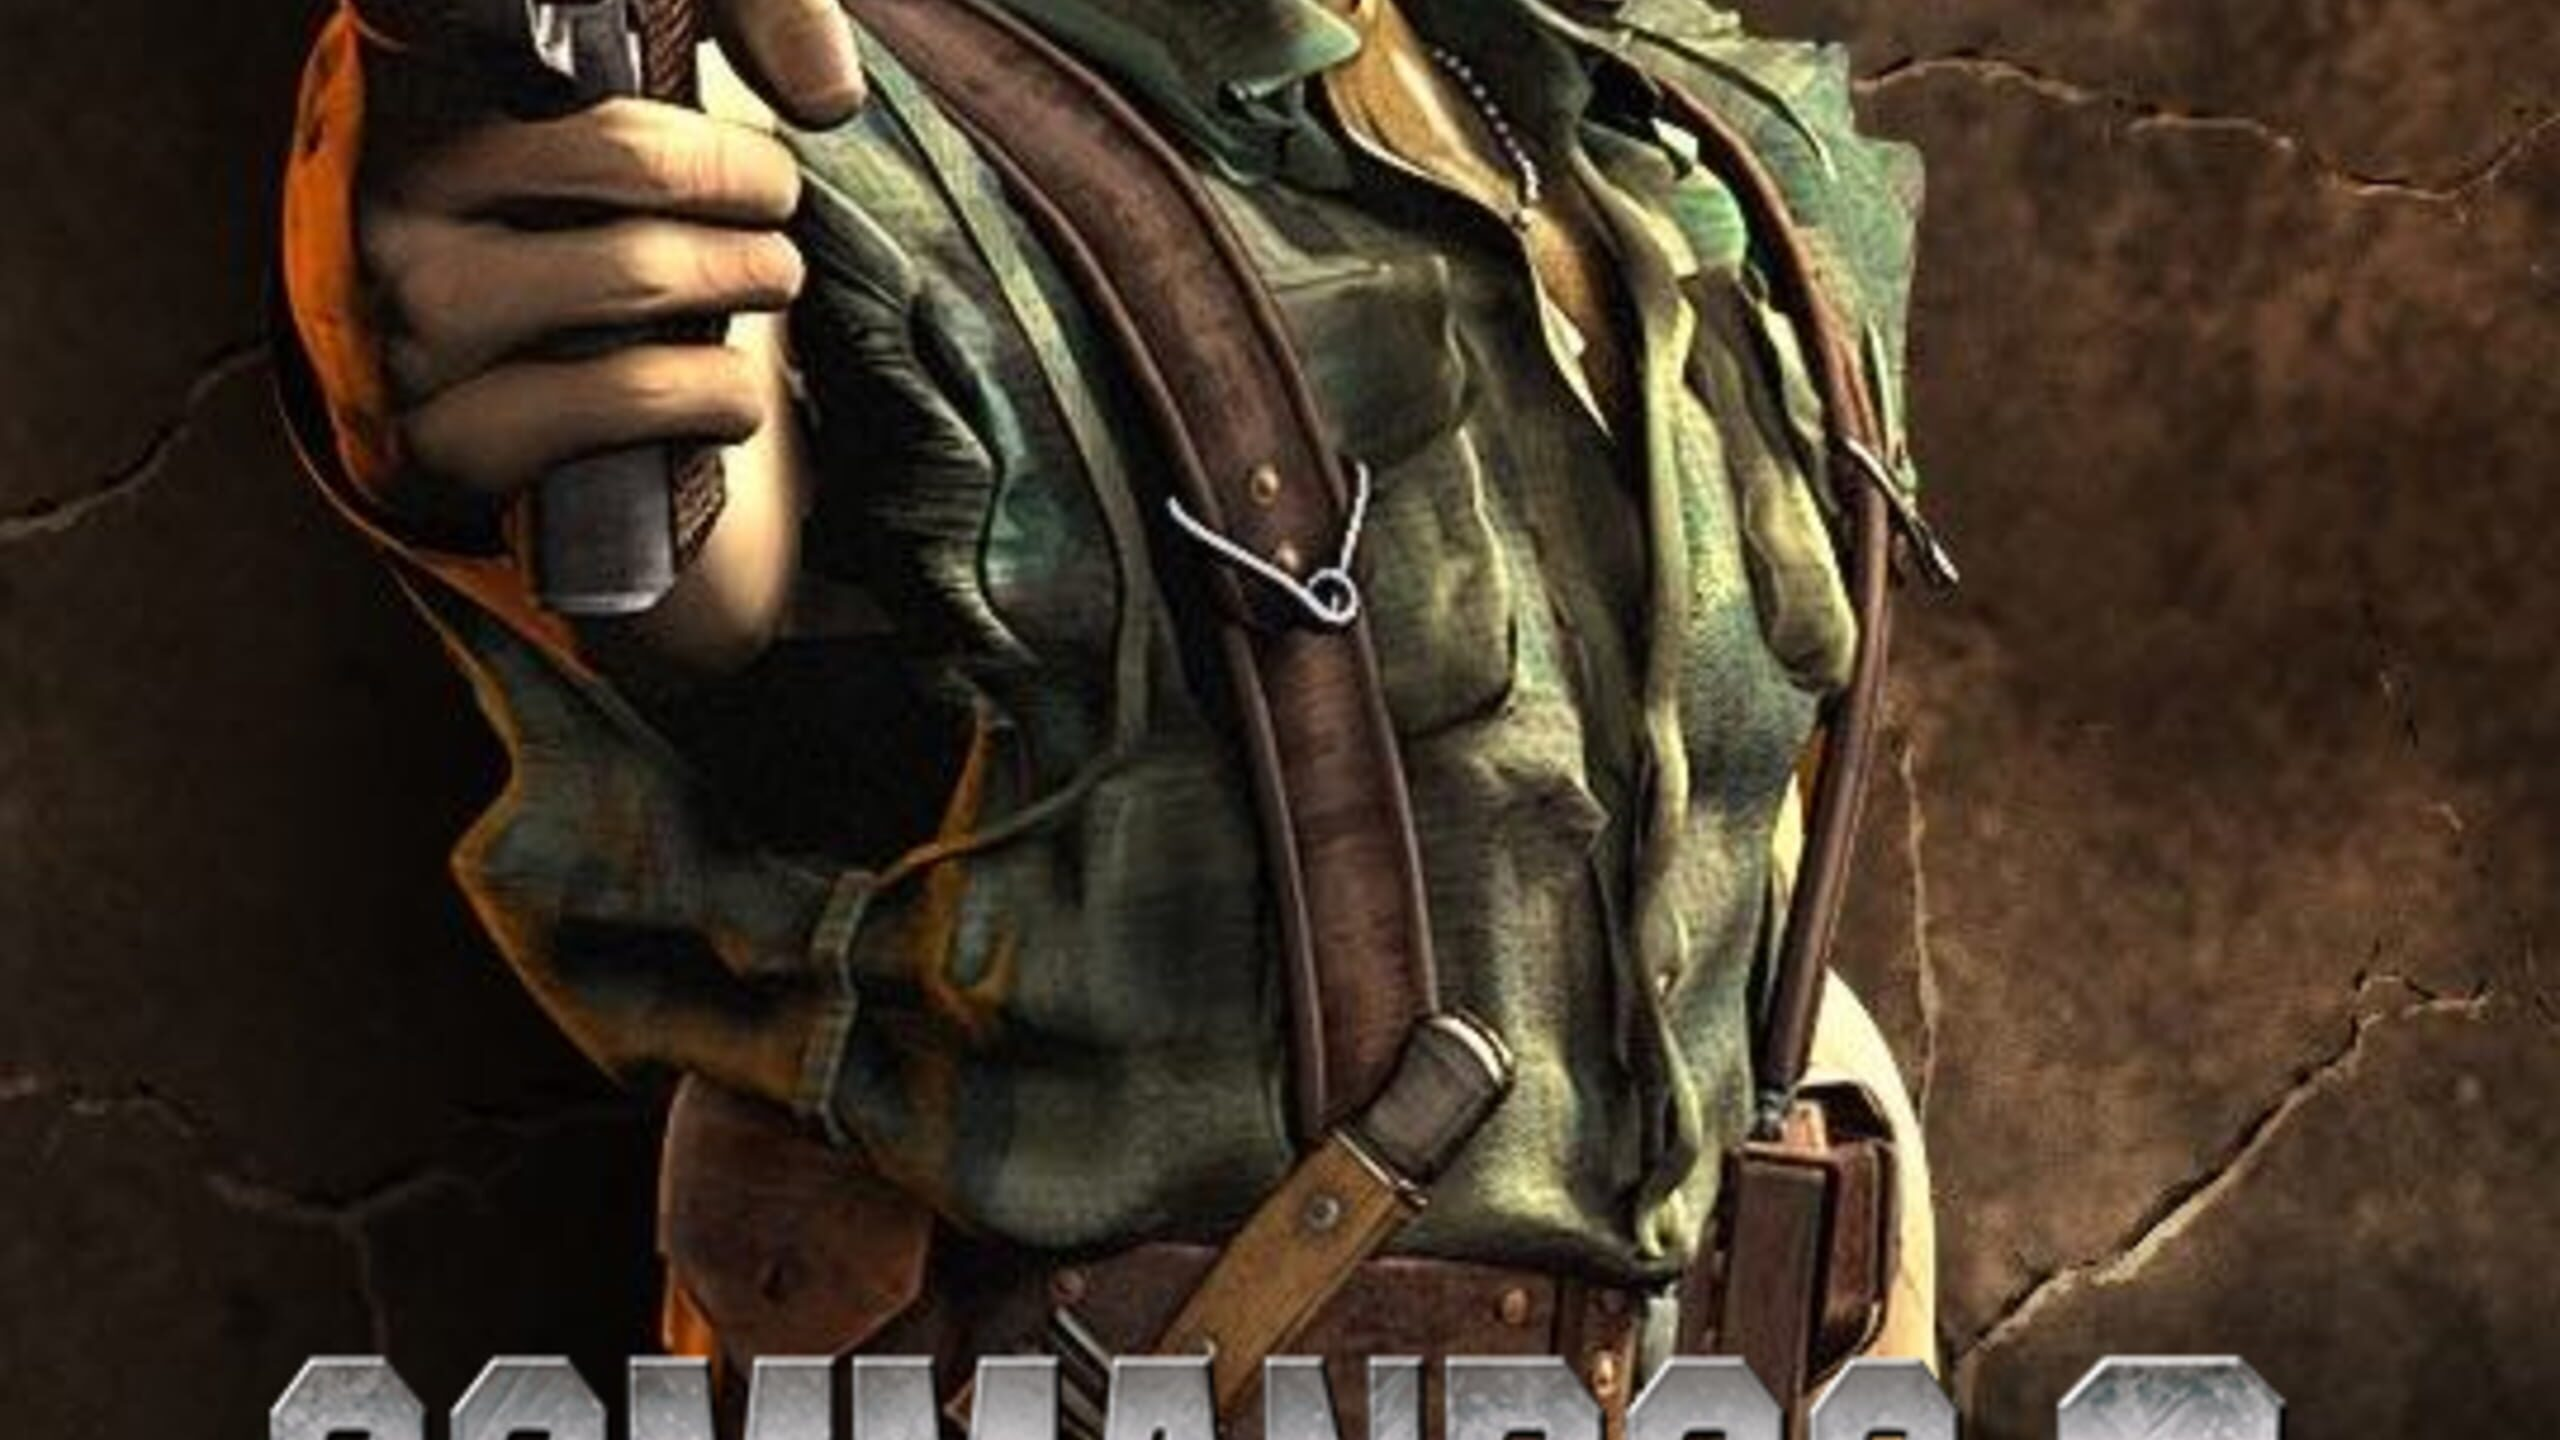 game cover art for Commandos 2 HD Remaster